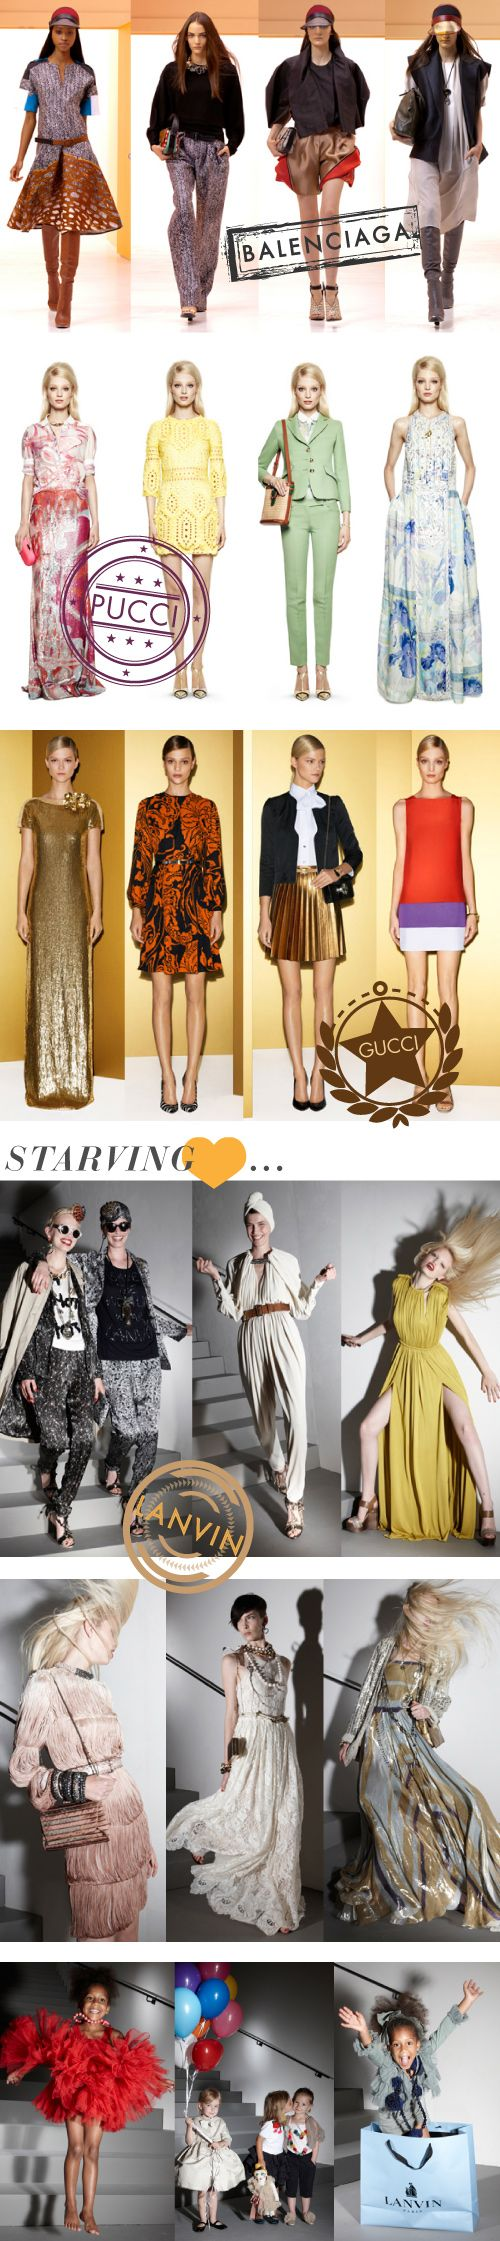 RESORT COLLECTIONS 2012